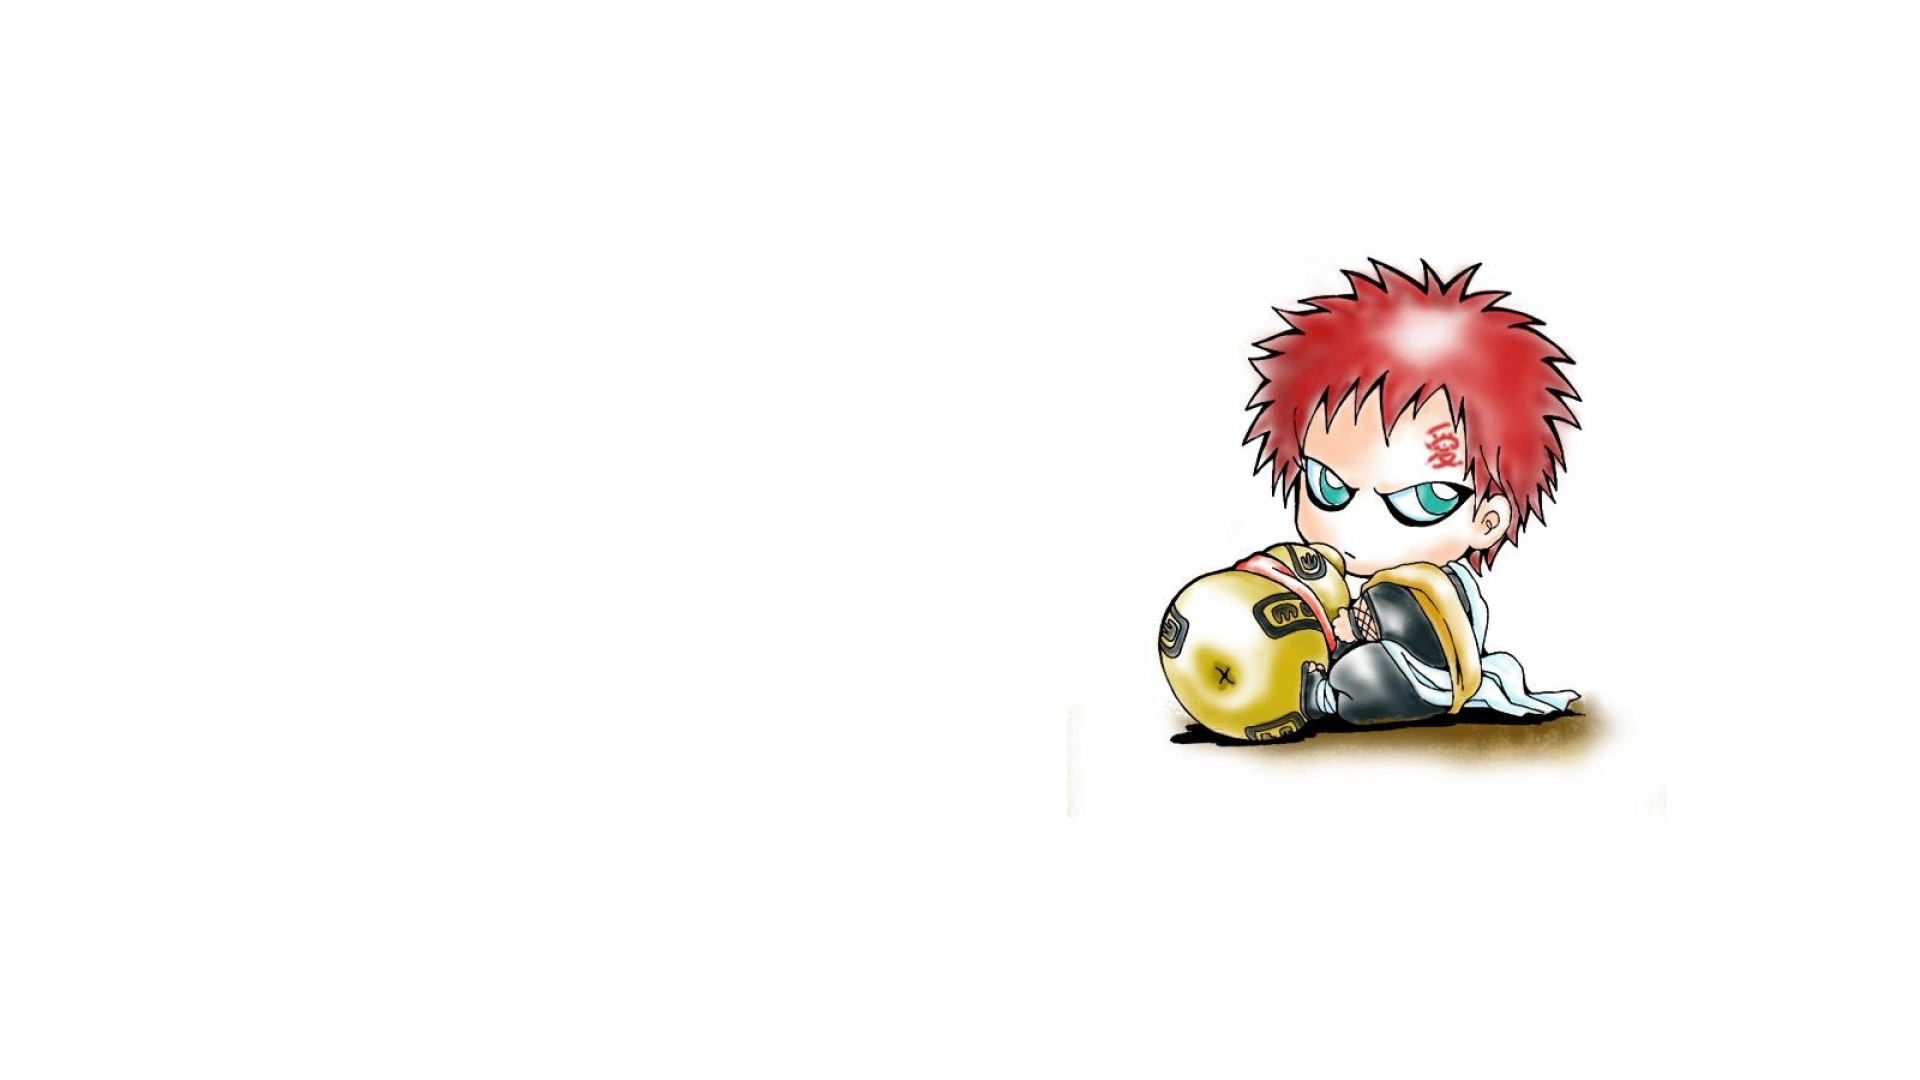 Chibi Gaara wallpaper 226760 1920x1080